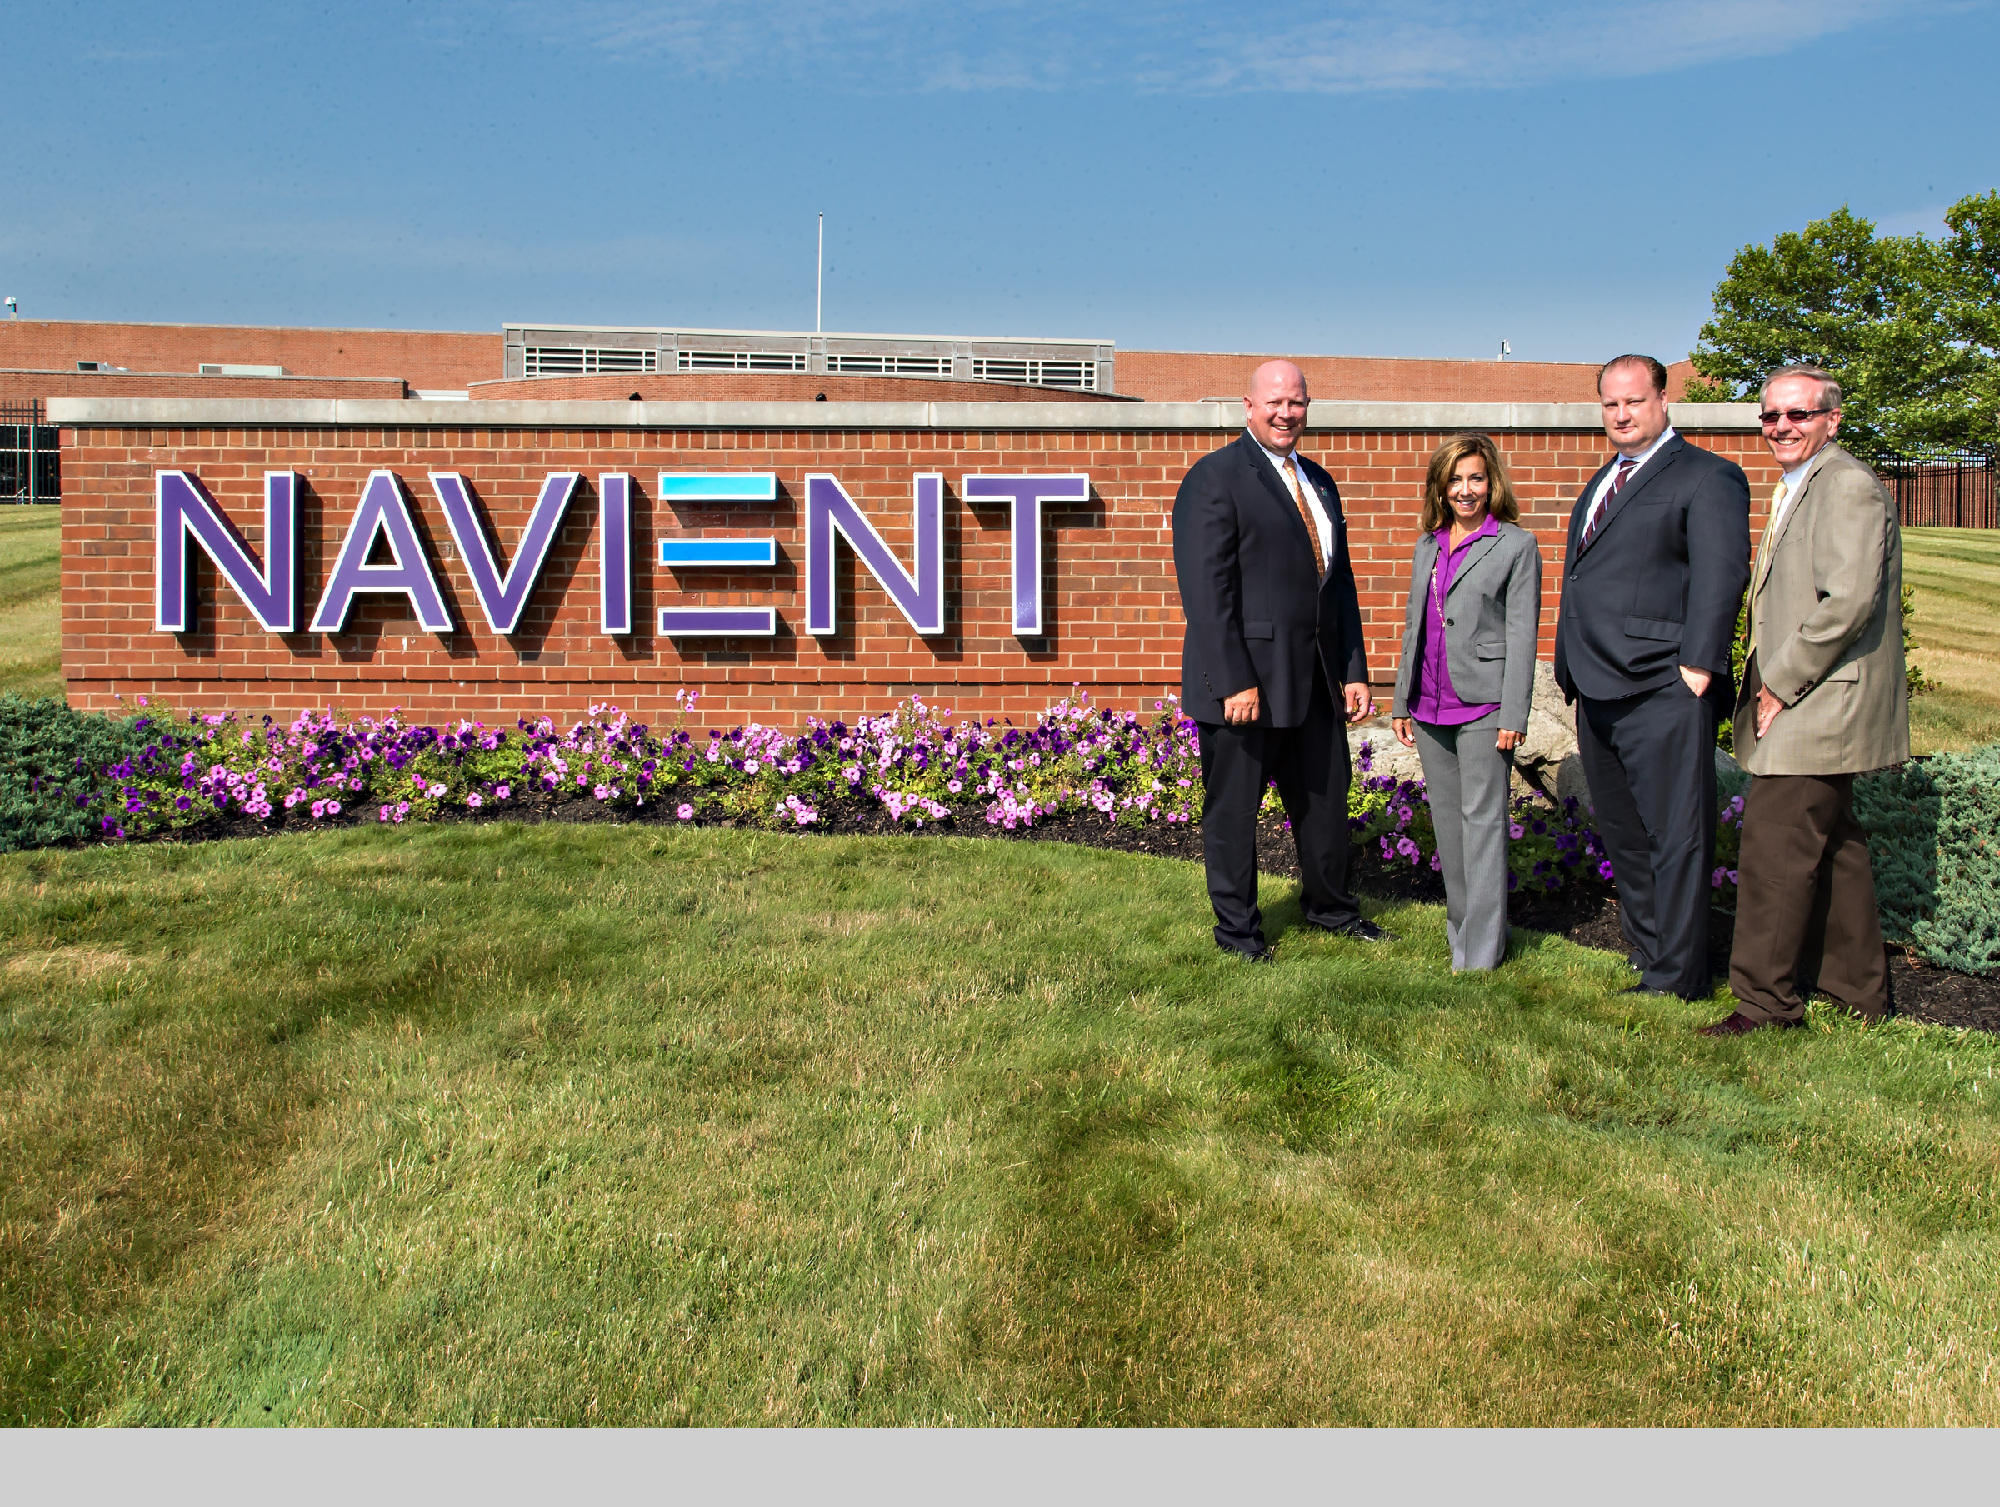 The Biggest Loser: Navient Tumbles 14%. Lawsuits Do That